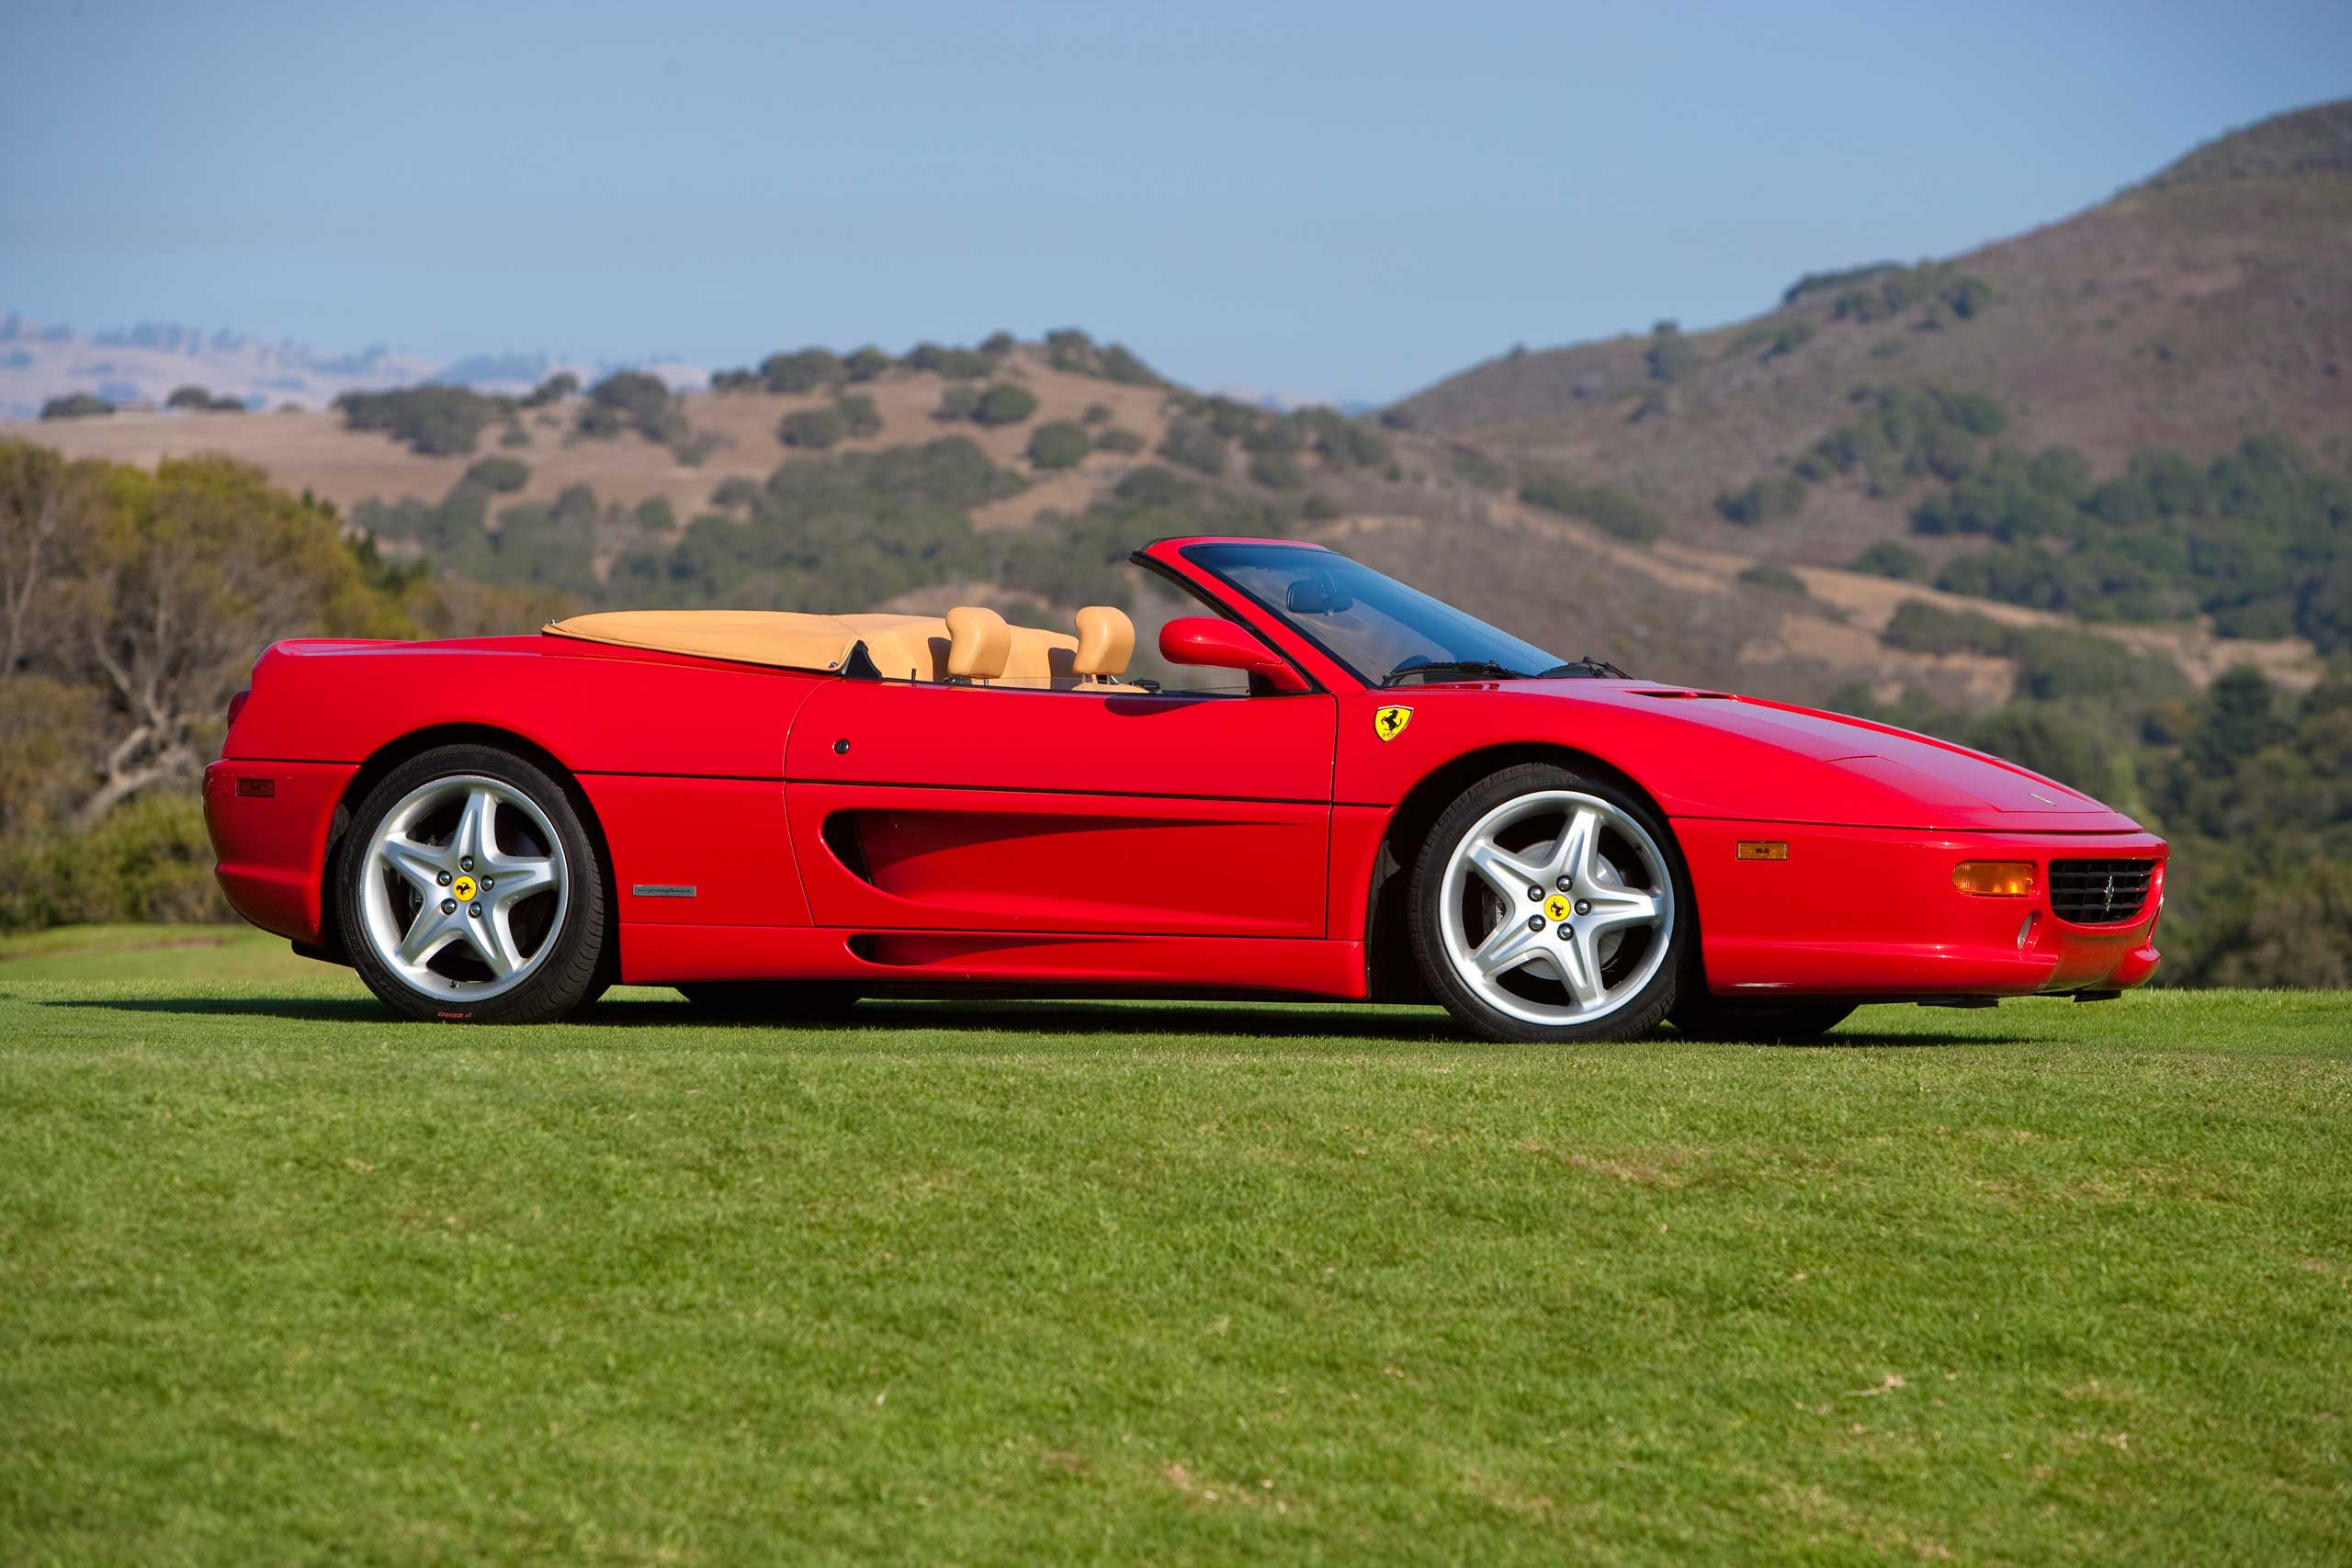 1998: The F355 was designed to perform at a high level in various kinds of driving environments.